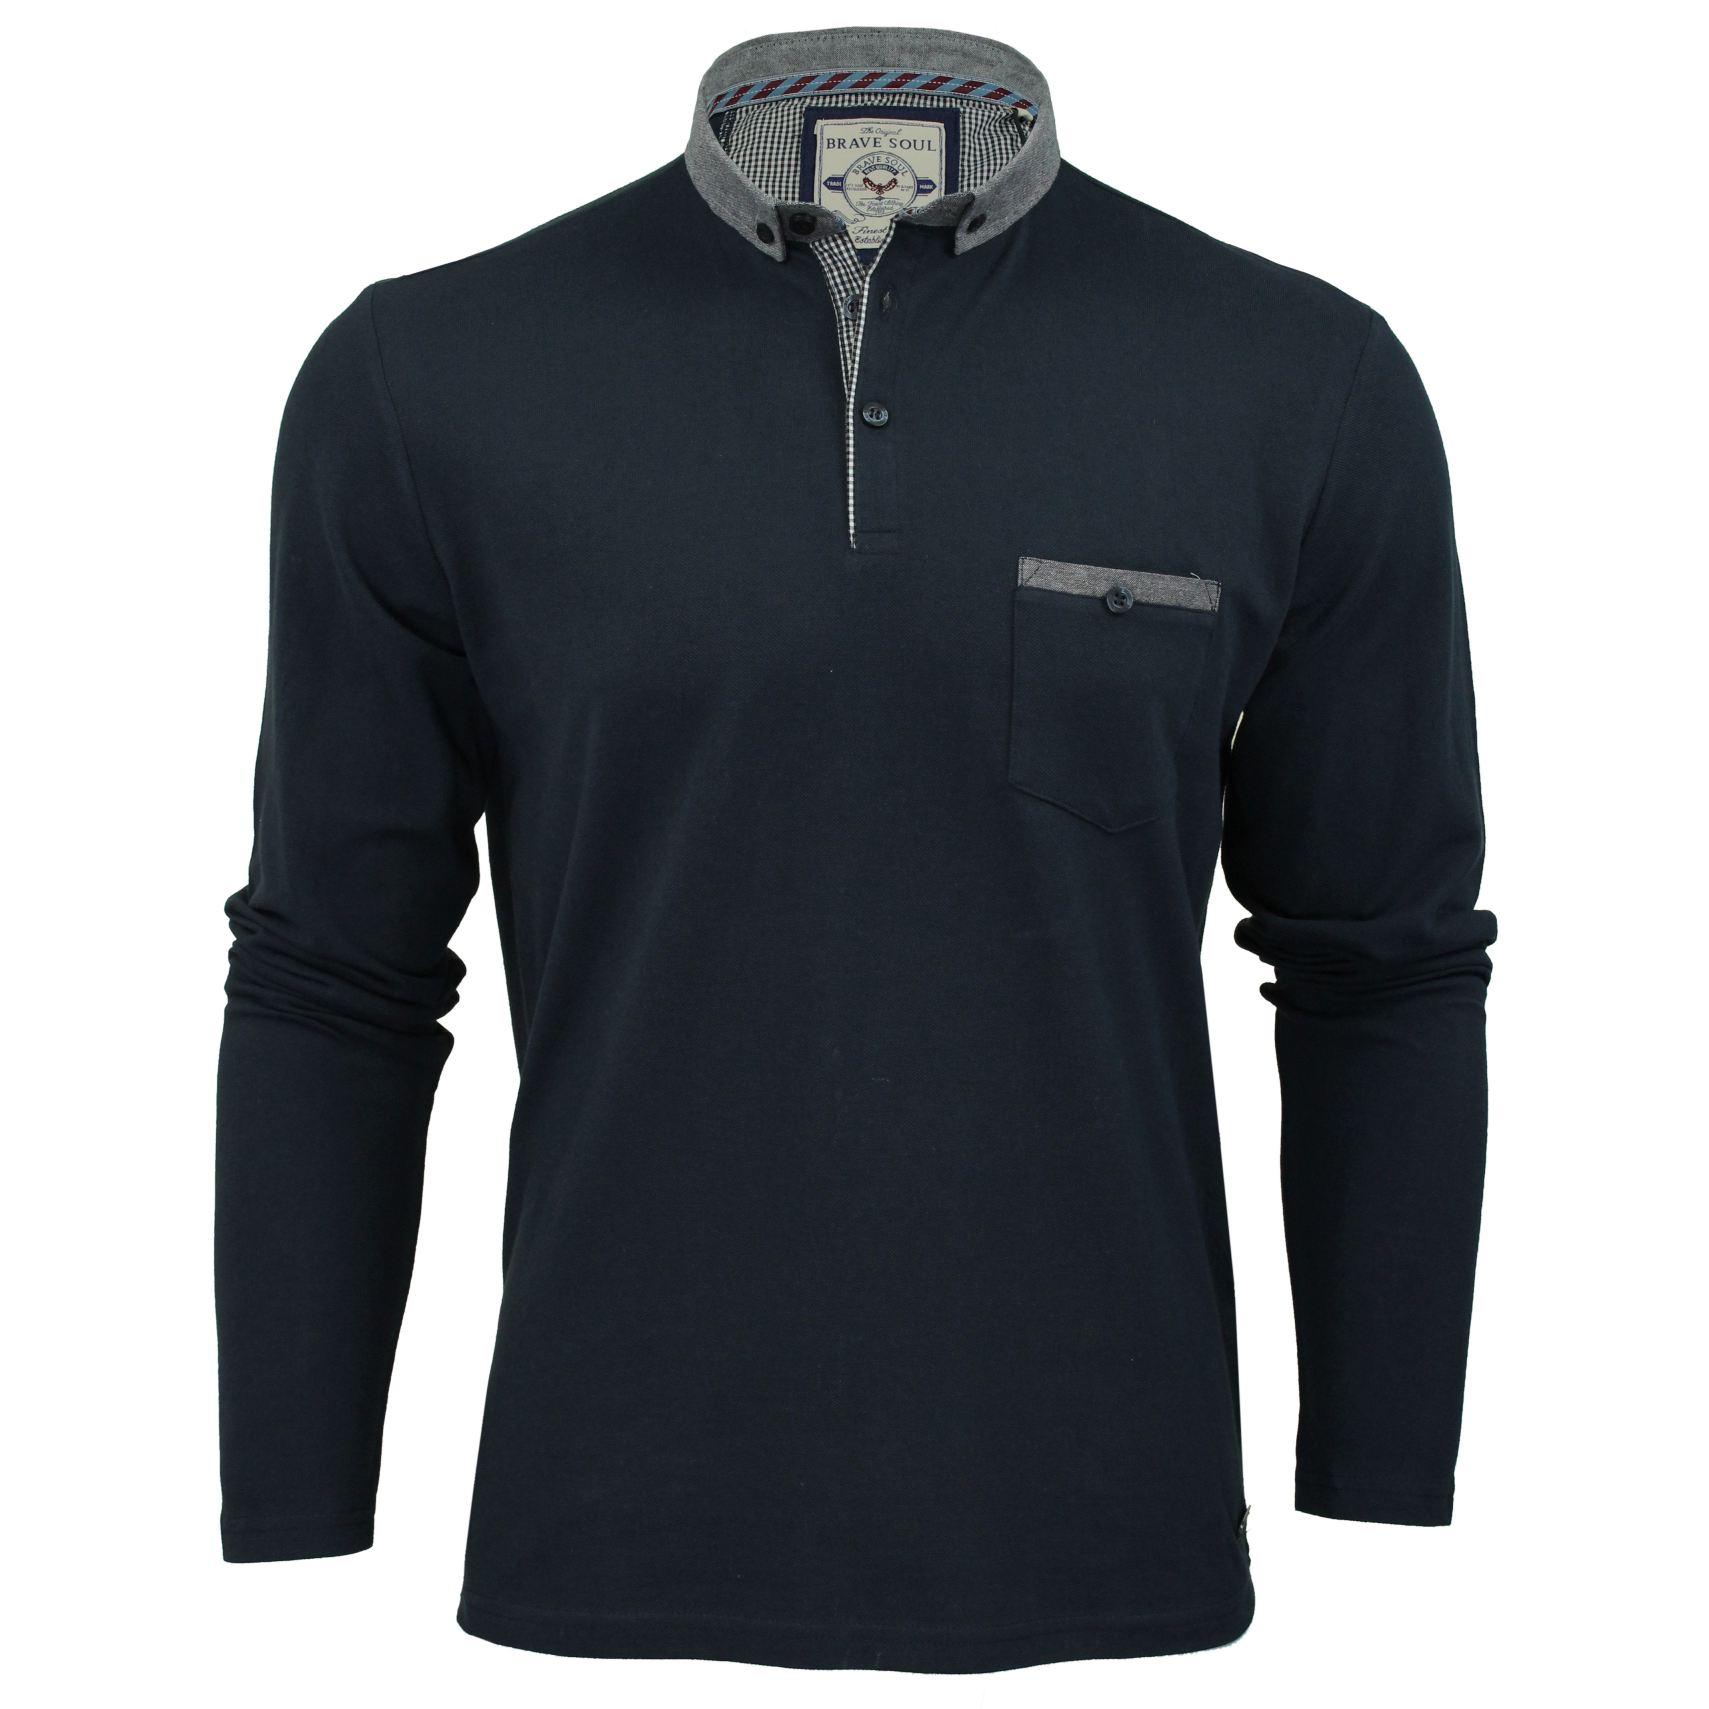 Mens Polo T-Shirt by Brave Soul 'Lincoln' Pique Long ...